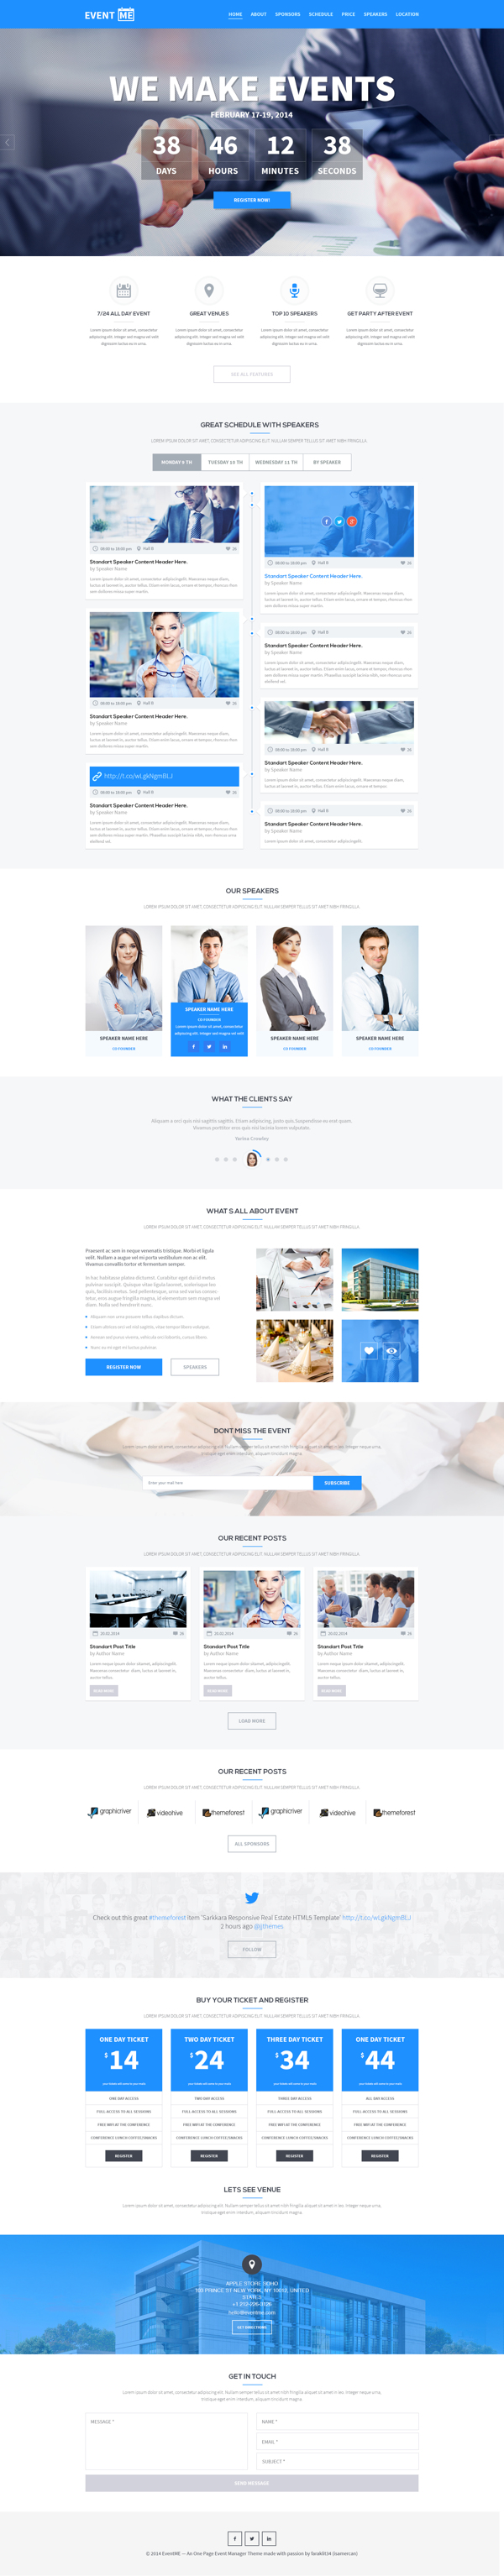 EventME - One Page Event Manager PSD Theme